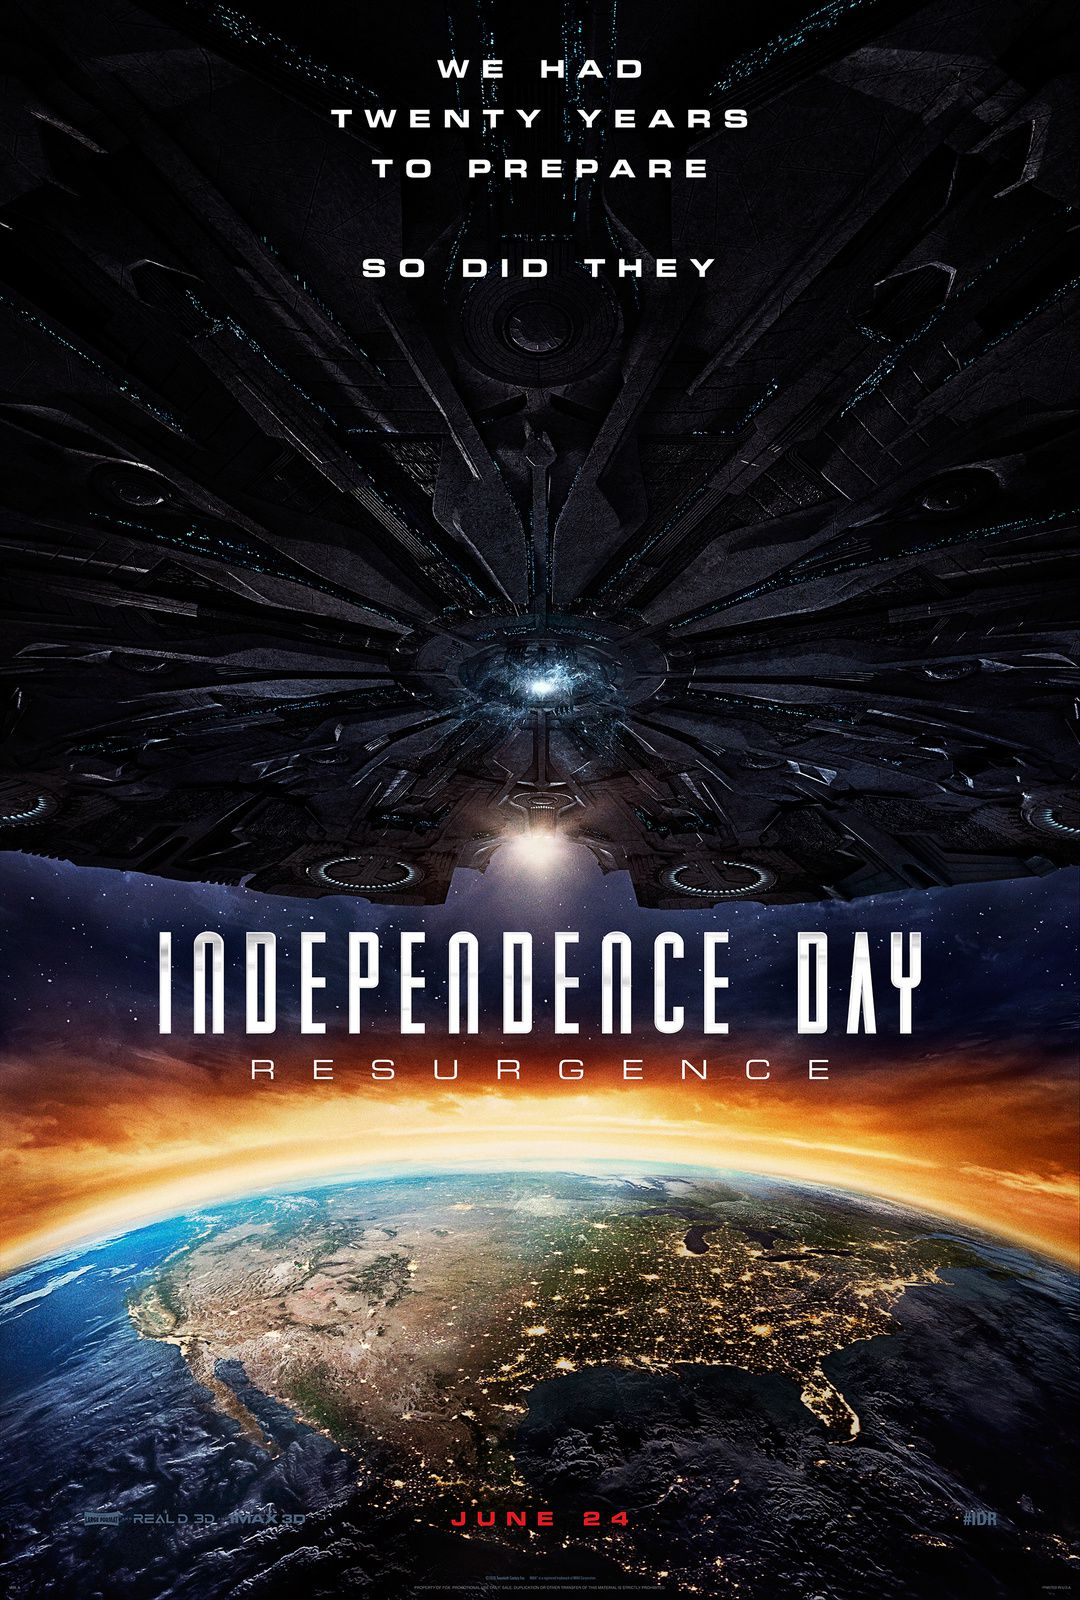 Affiche du film : Independance Day Resurgence